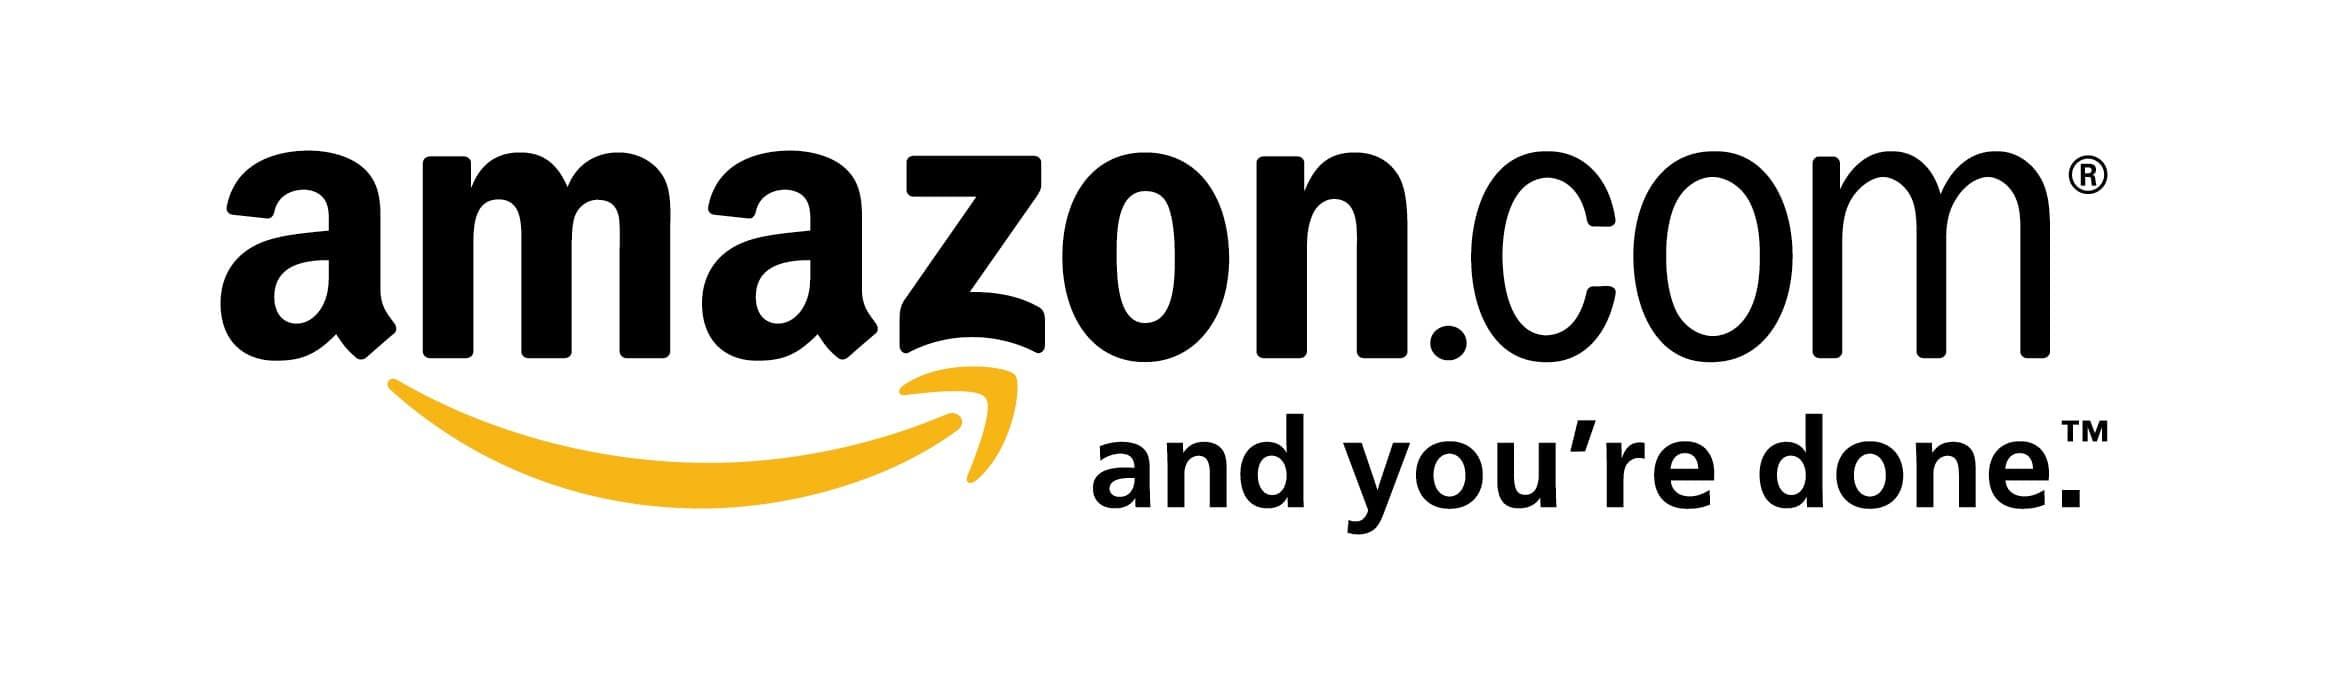 $10 bonus on Amazon when you reload $100 on a gift card